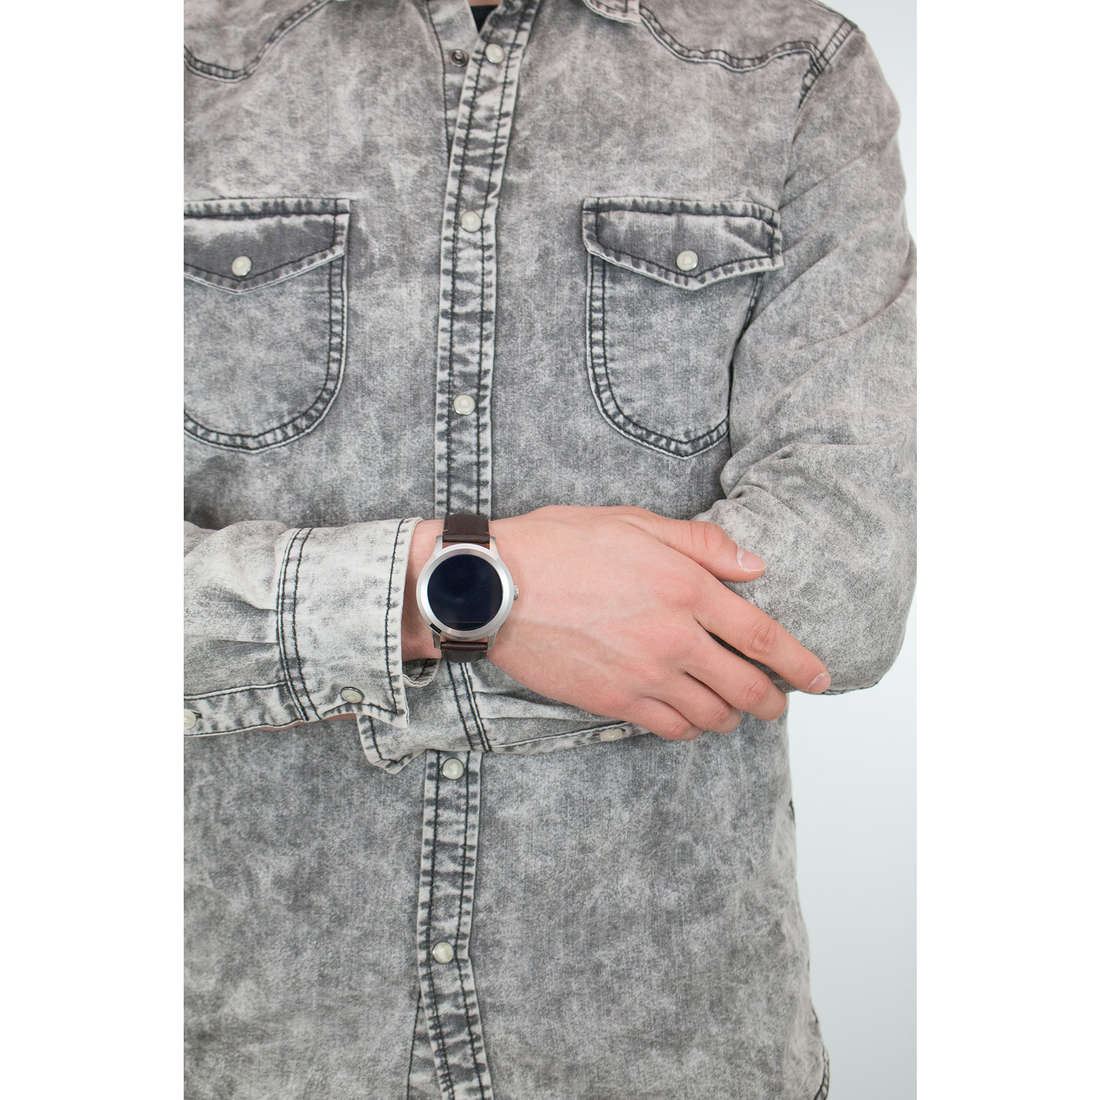 Fossil Smartwatches Q Founder man FTW2119 photo wearing